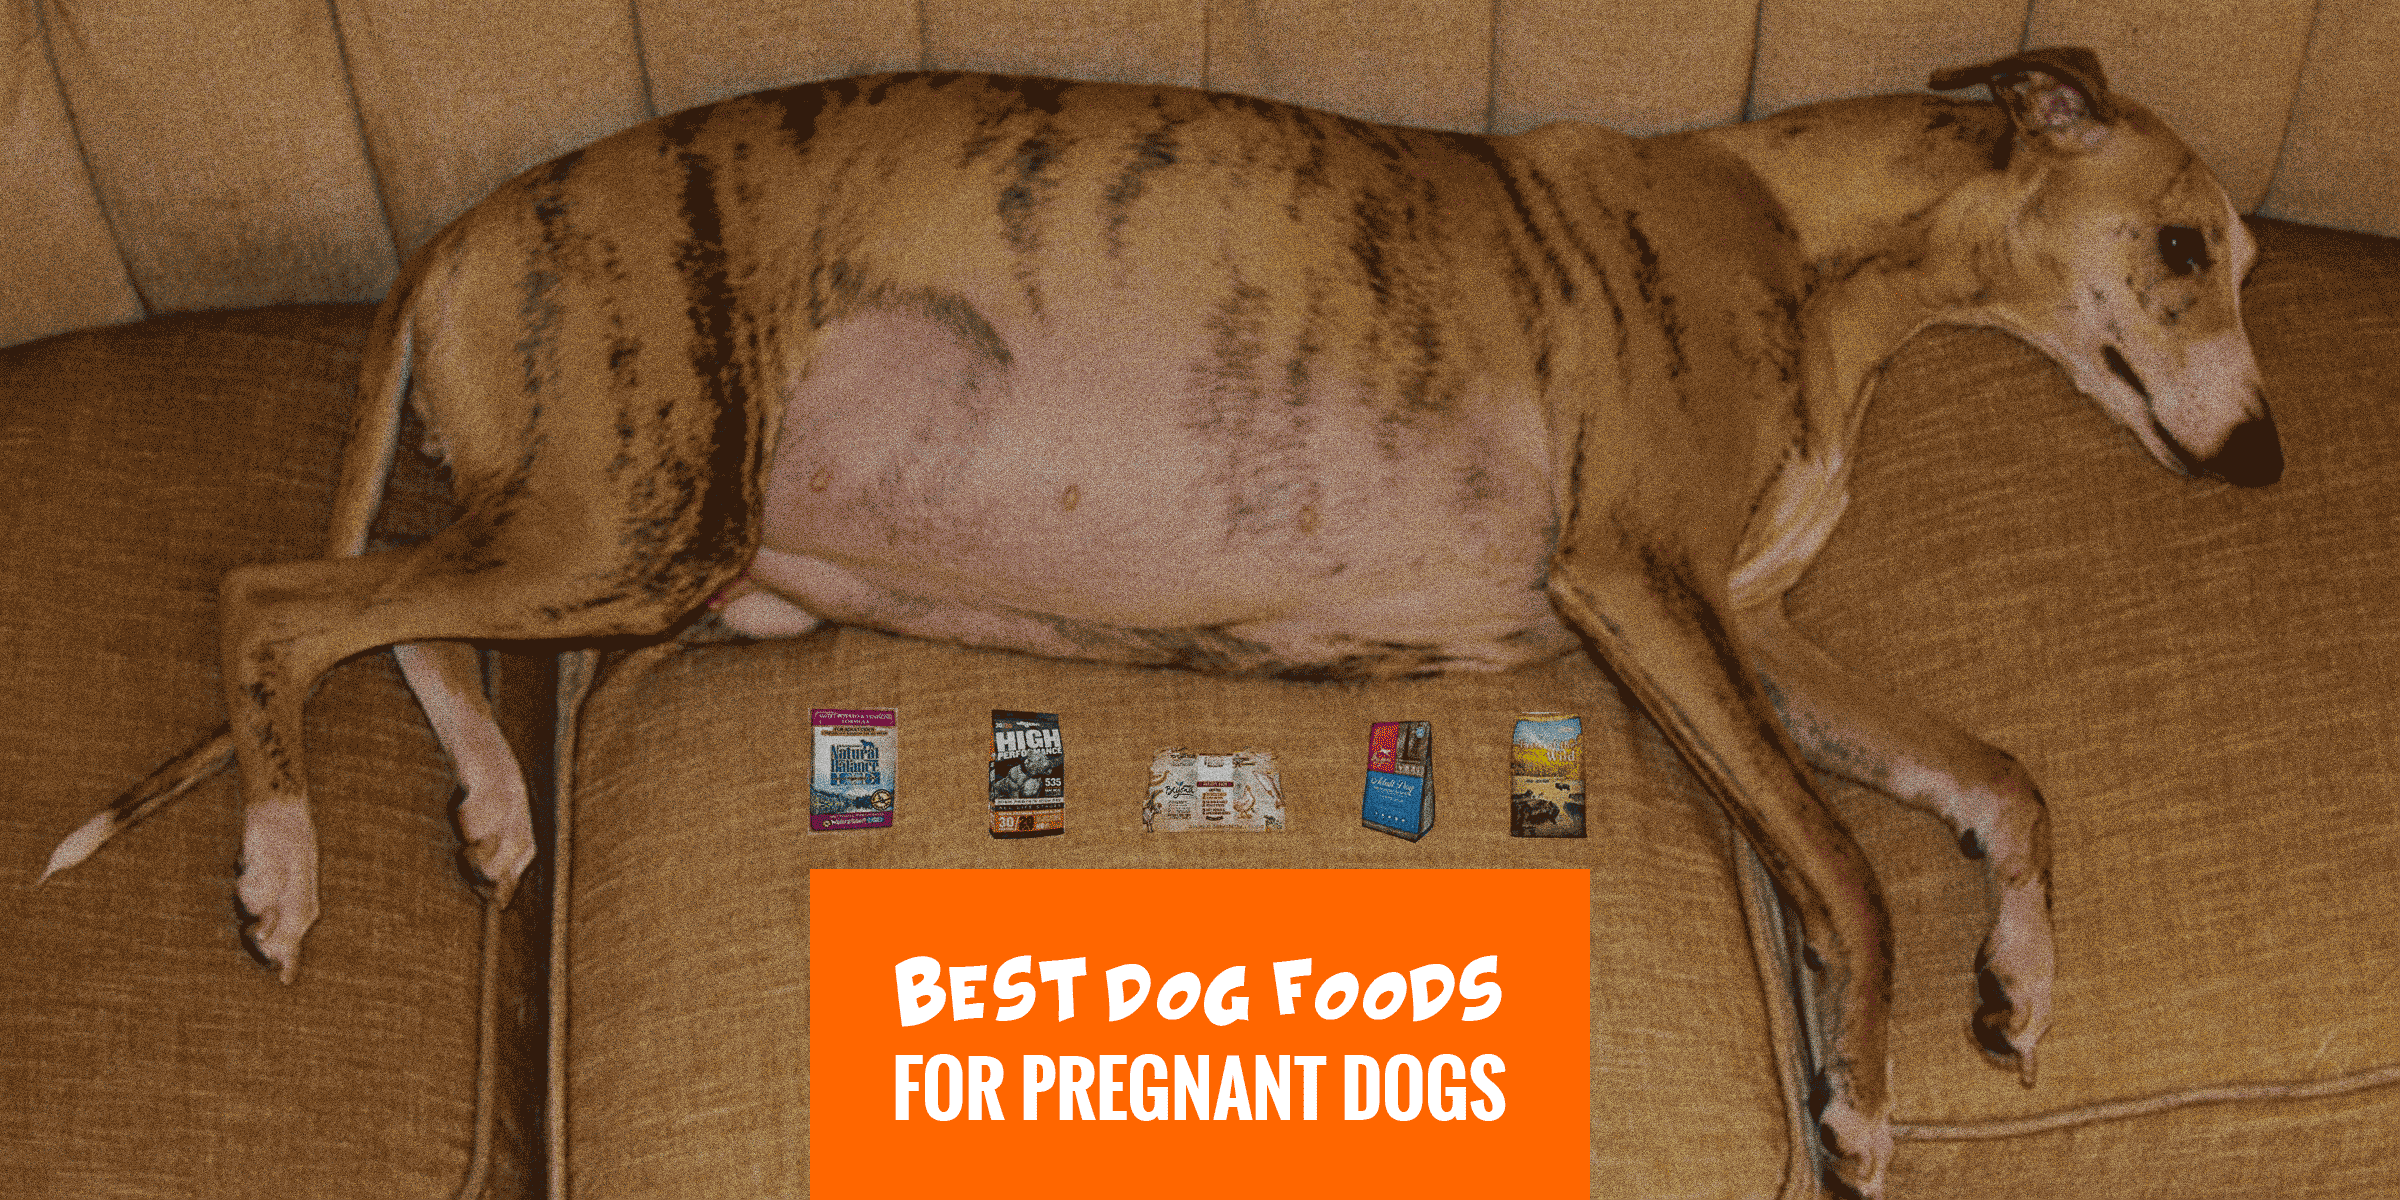 Orijen Dog Food Reviews >> 6 Best Dog Foods for Pregnant Dogs — Human-Grade, Freeze-Dried...